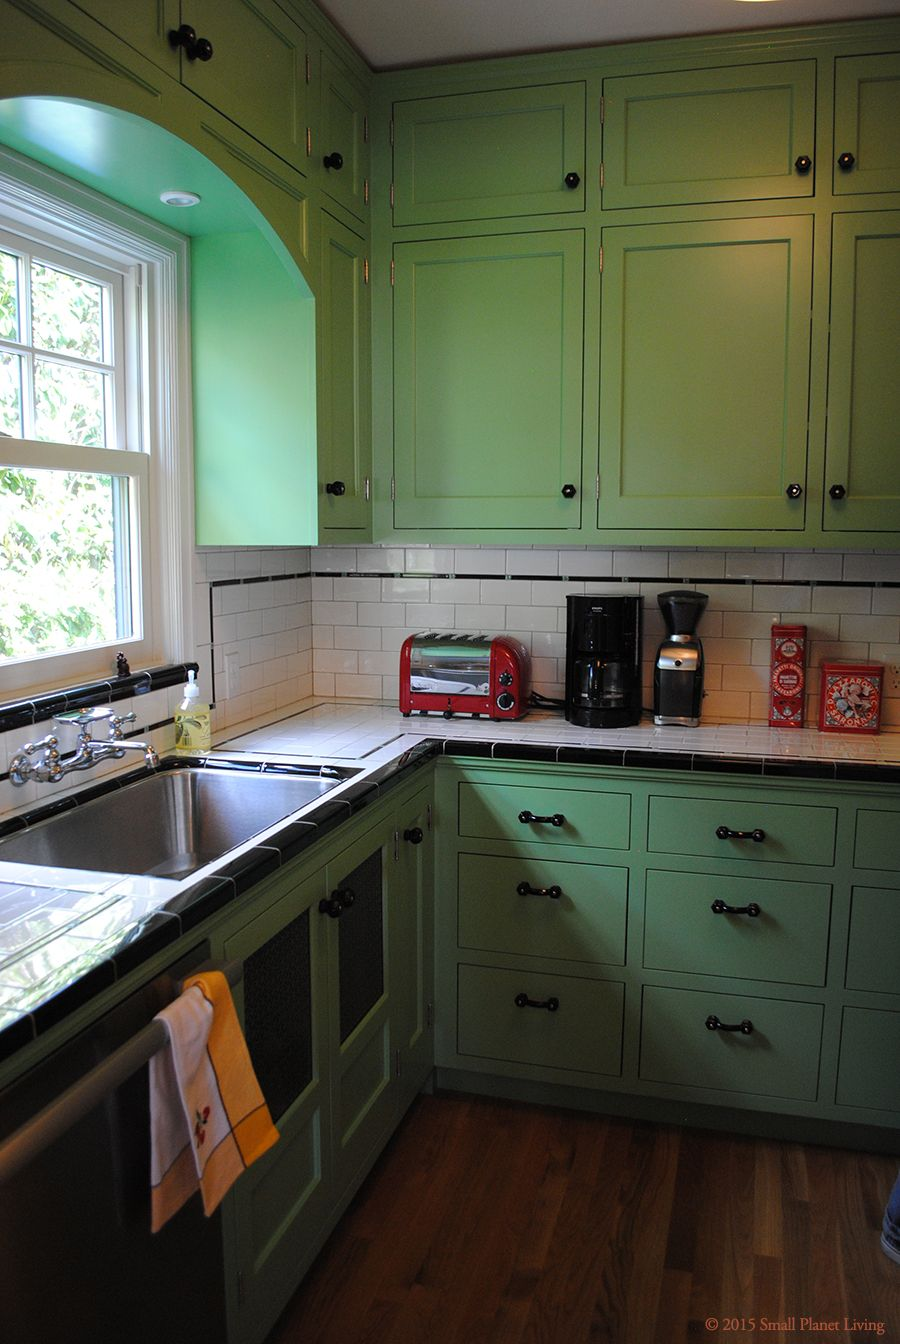 Bungalow Kitchen Extremely Well Done Remodel C 1920 25 Bungalow Kitchen Vintage Kitchen Kitchen Inspirations